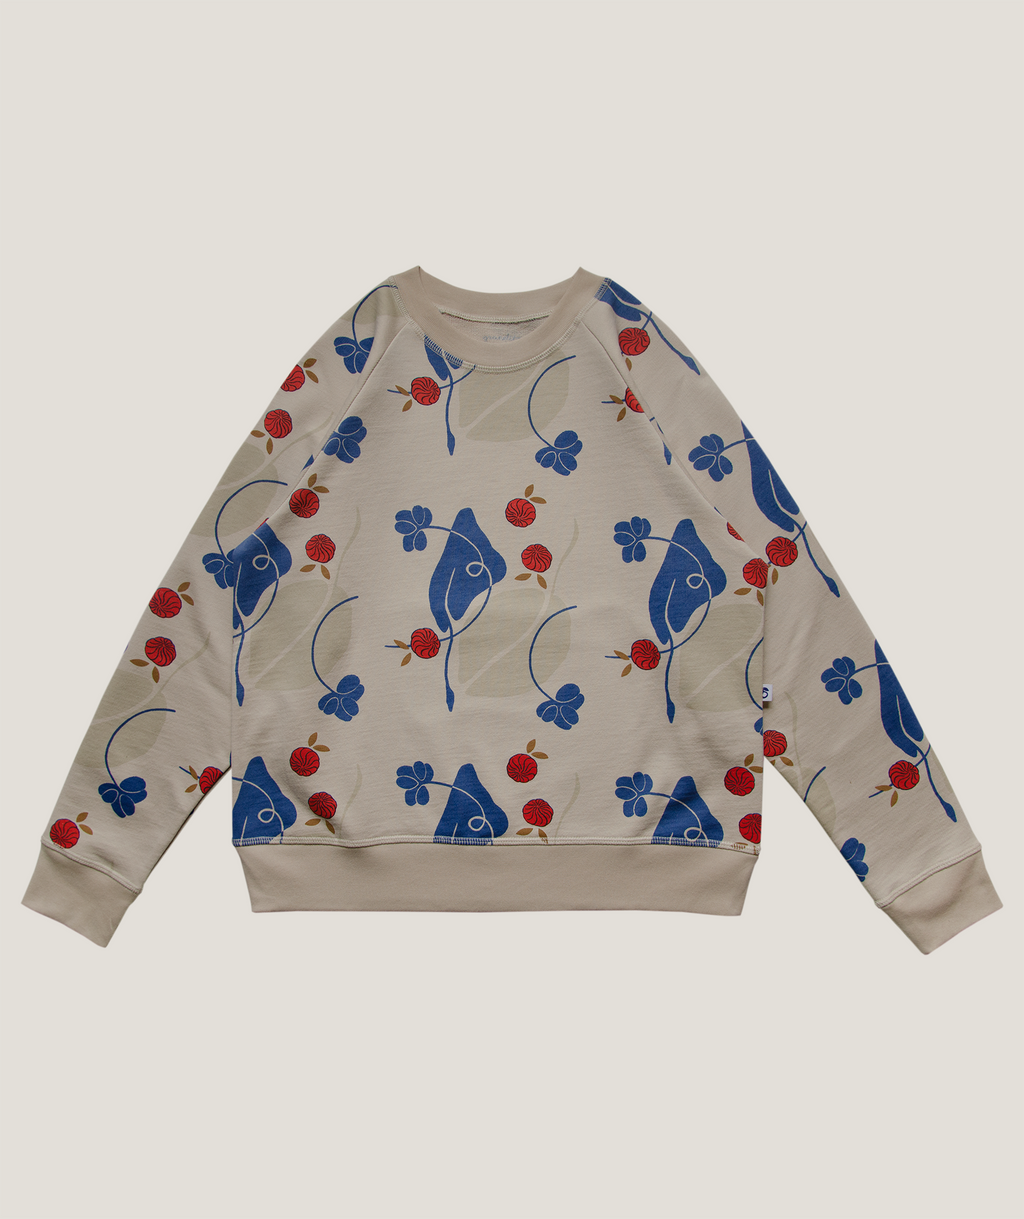 'Lucky' Sweatshirt ADULT - 100% Organic Pima Cotton